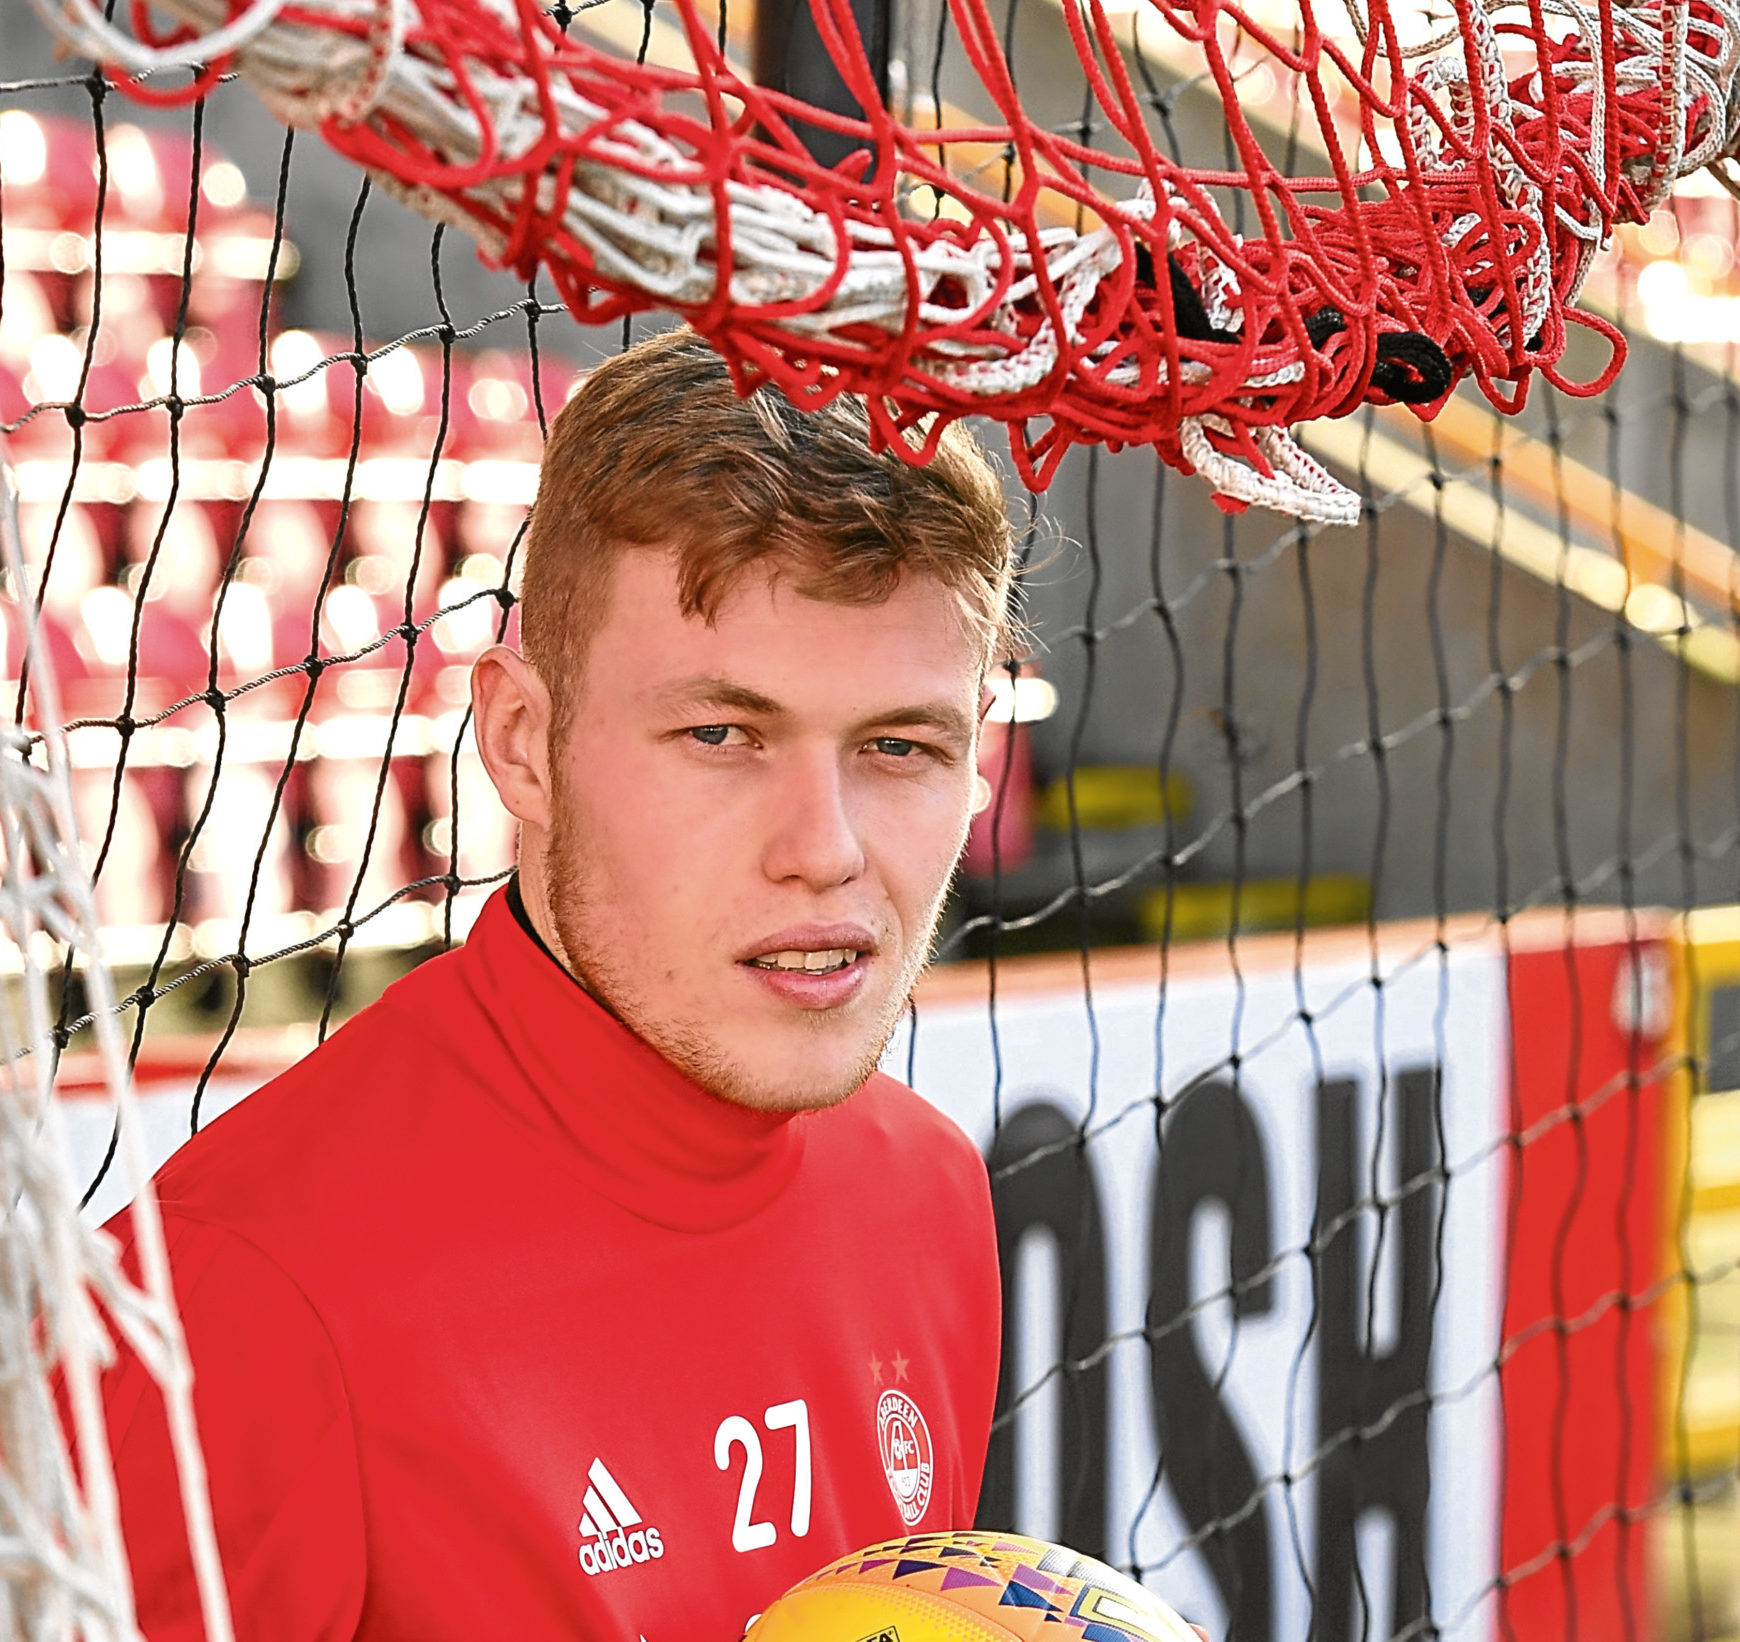 Aberdeen FC's Sam Cosgrove was sent off just minutes into his debut - but now he's one of the Scottish games hottest properties.